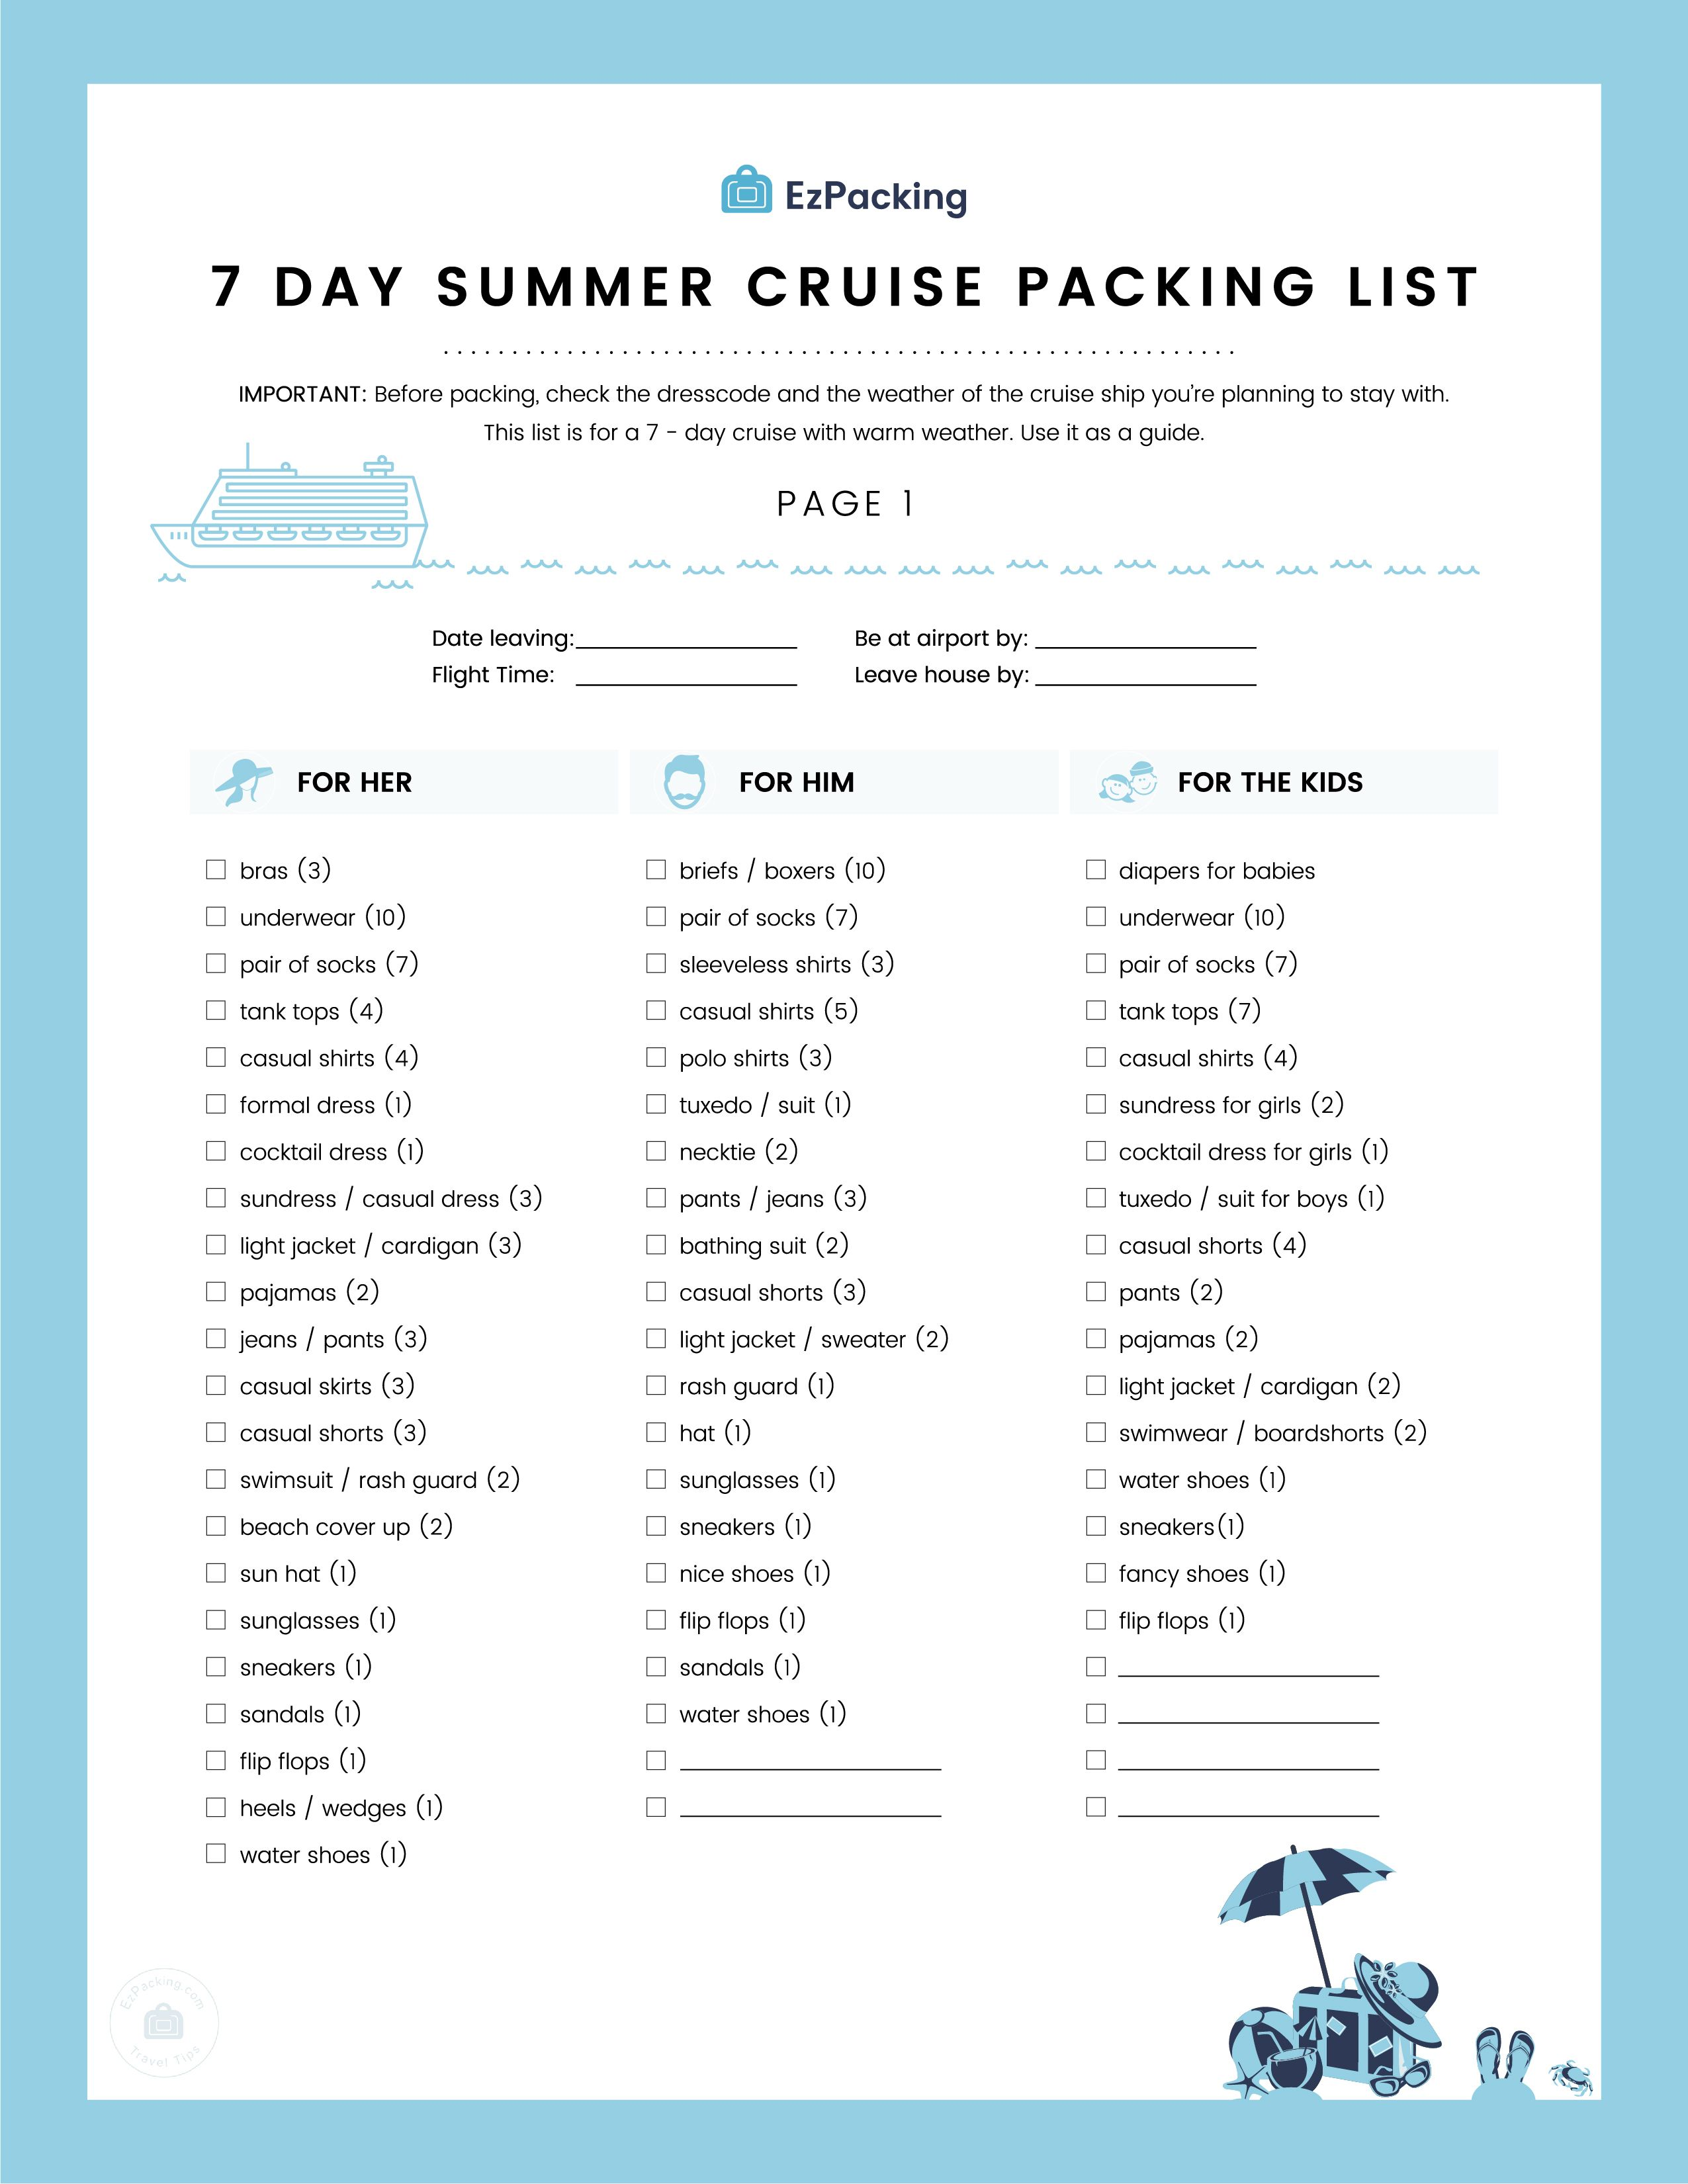 Packing For A Cruise? Check out our 7-Day Summer Cruise Packing List